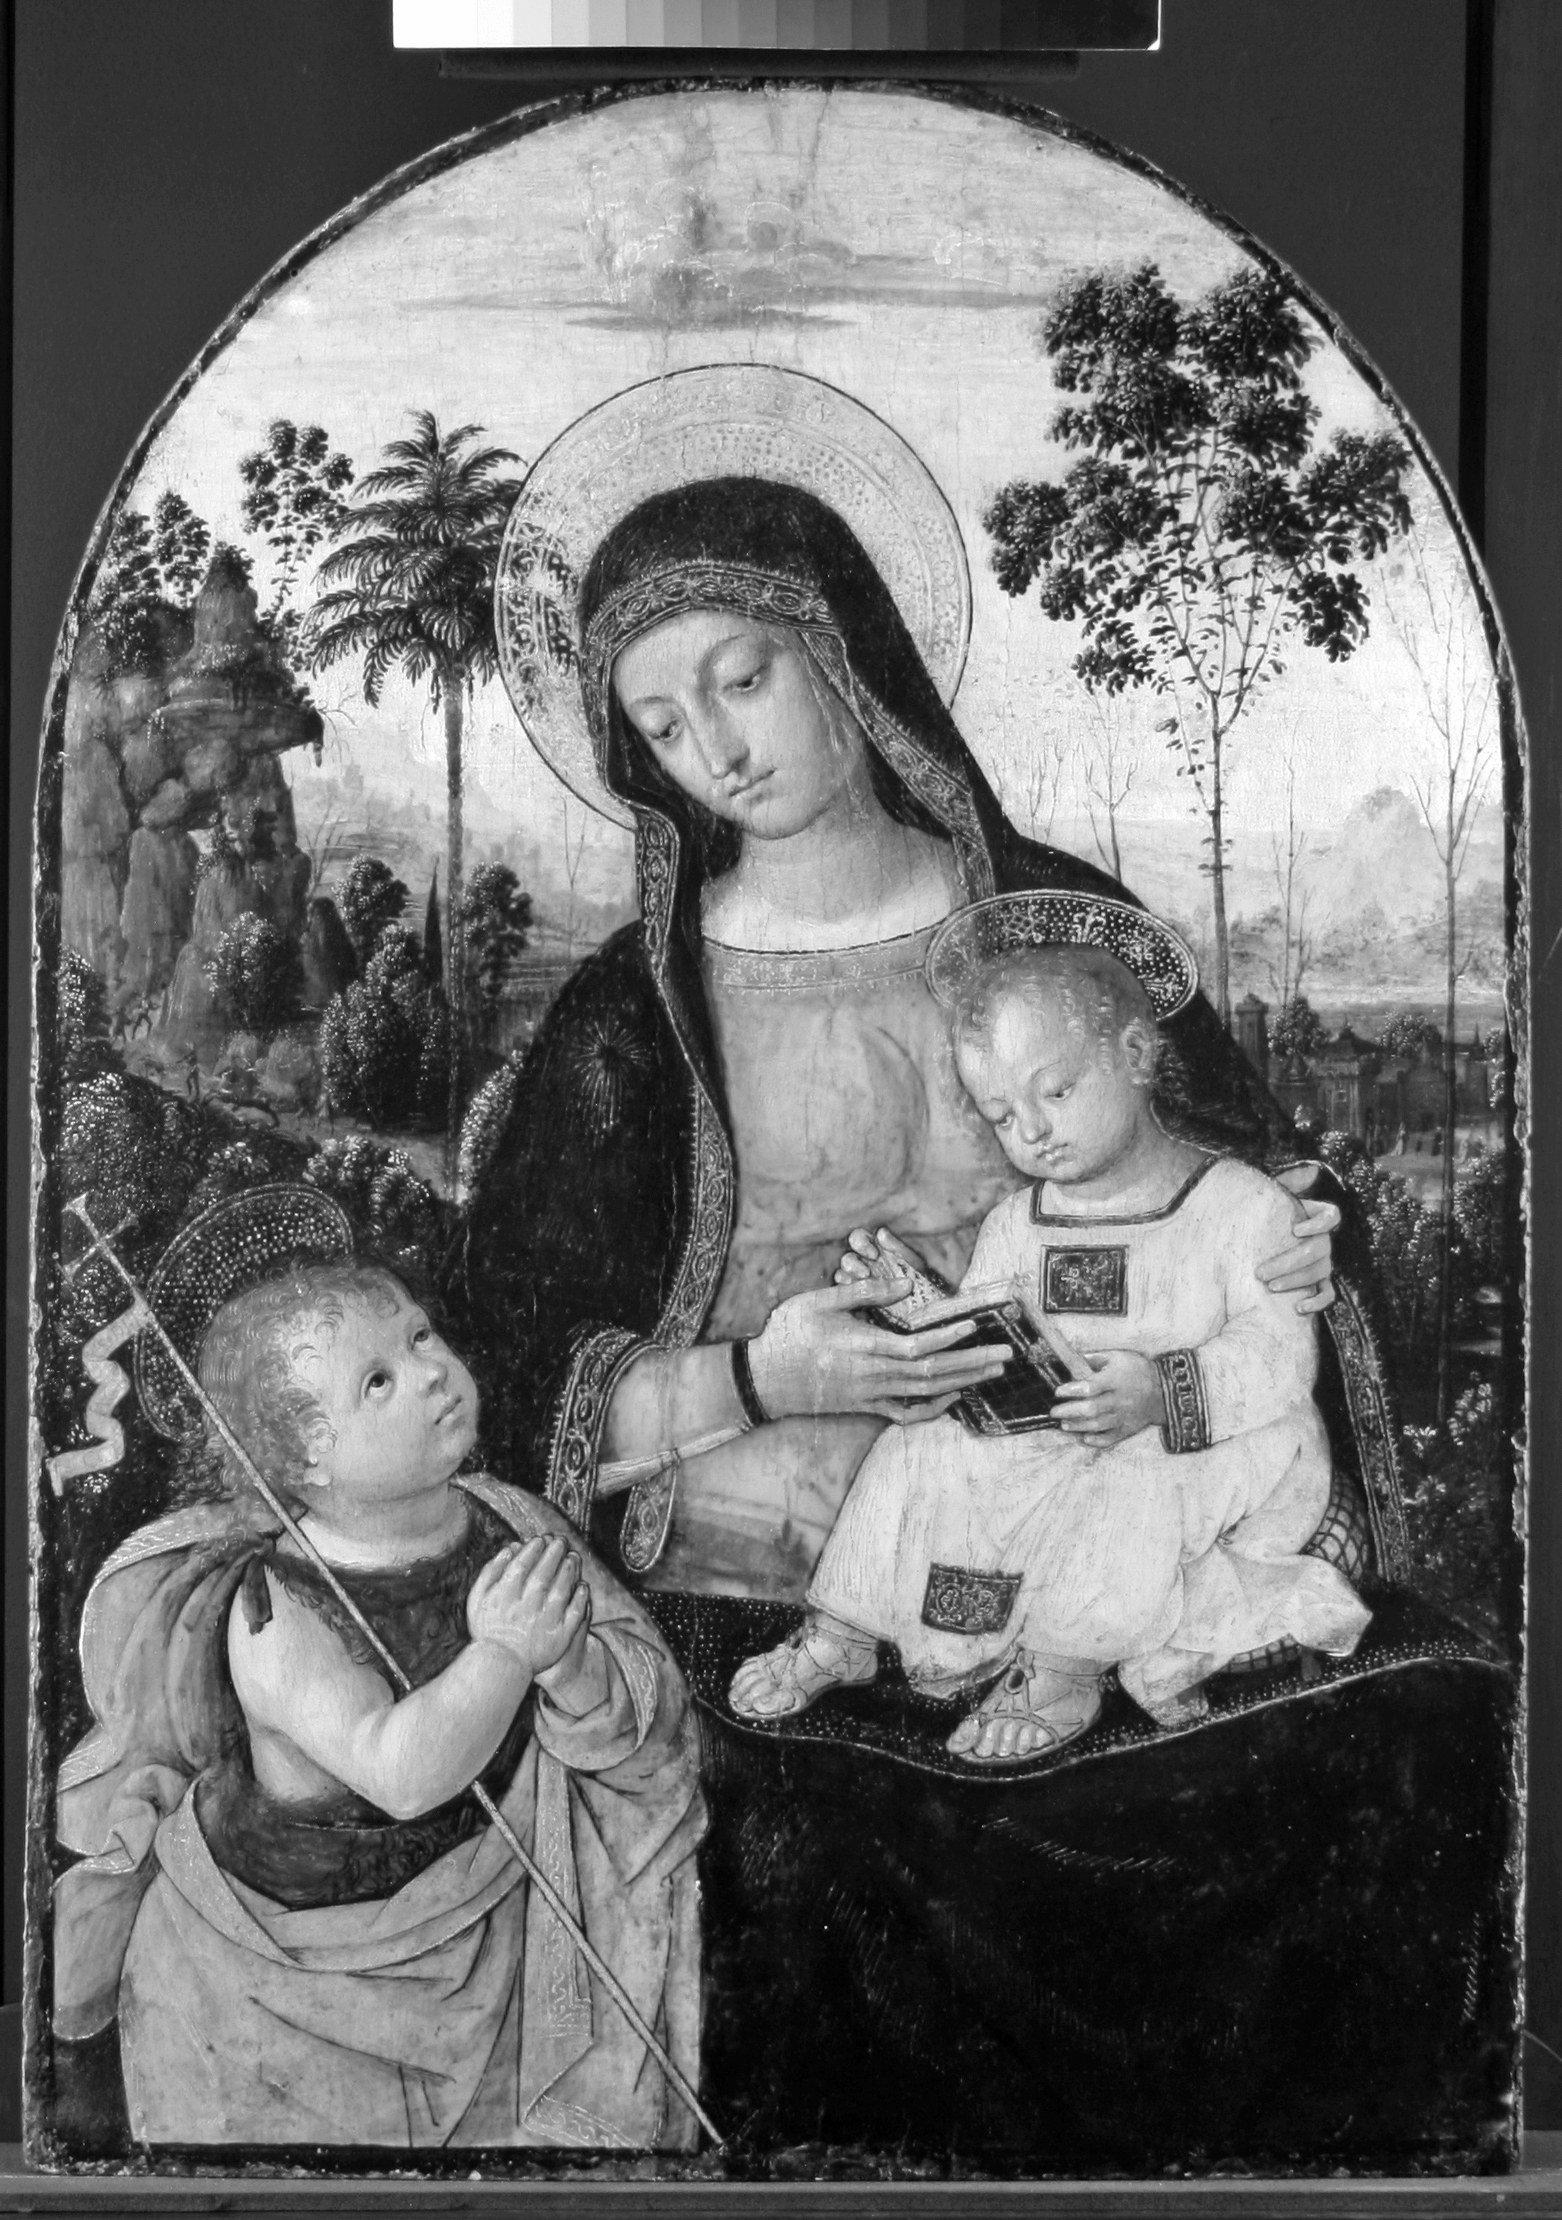 Fig. 2 Infrared reflectogram of Virgin and Child (©Titmus)